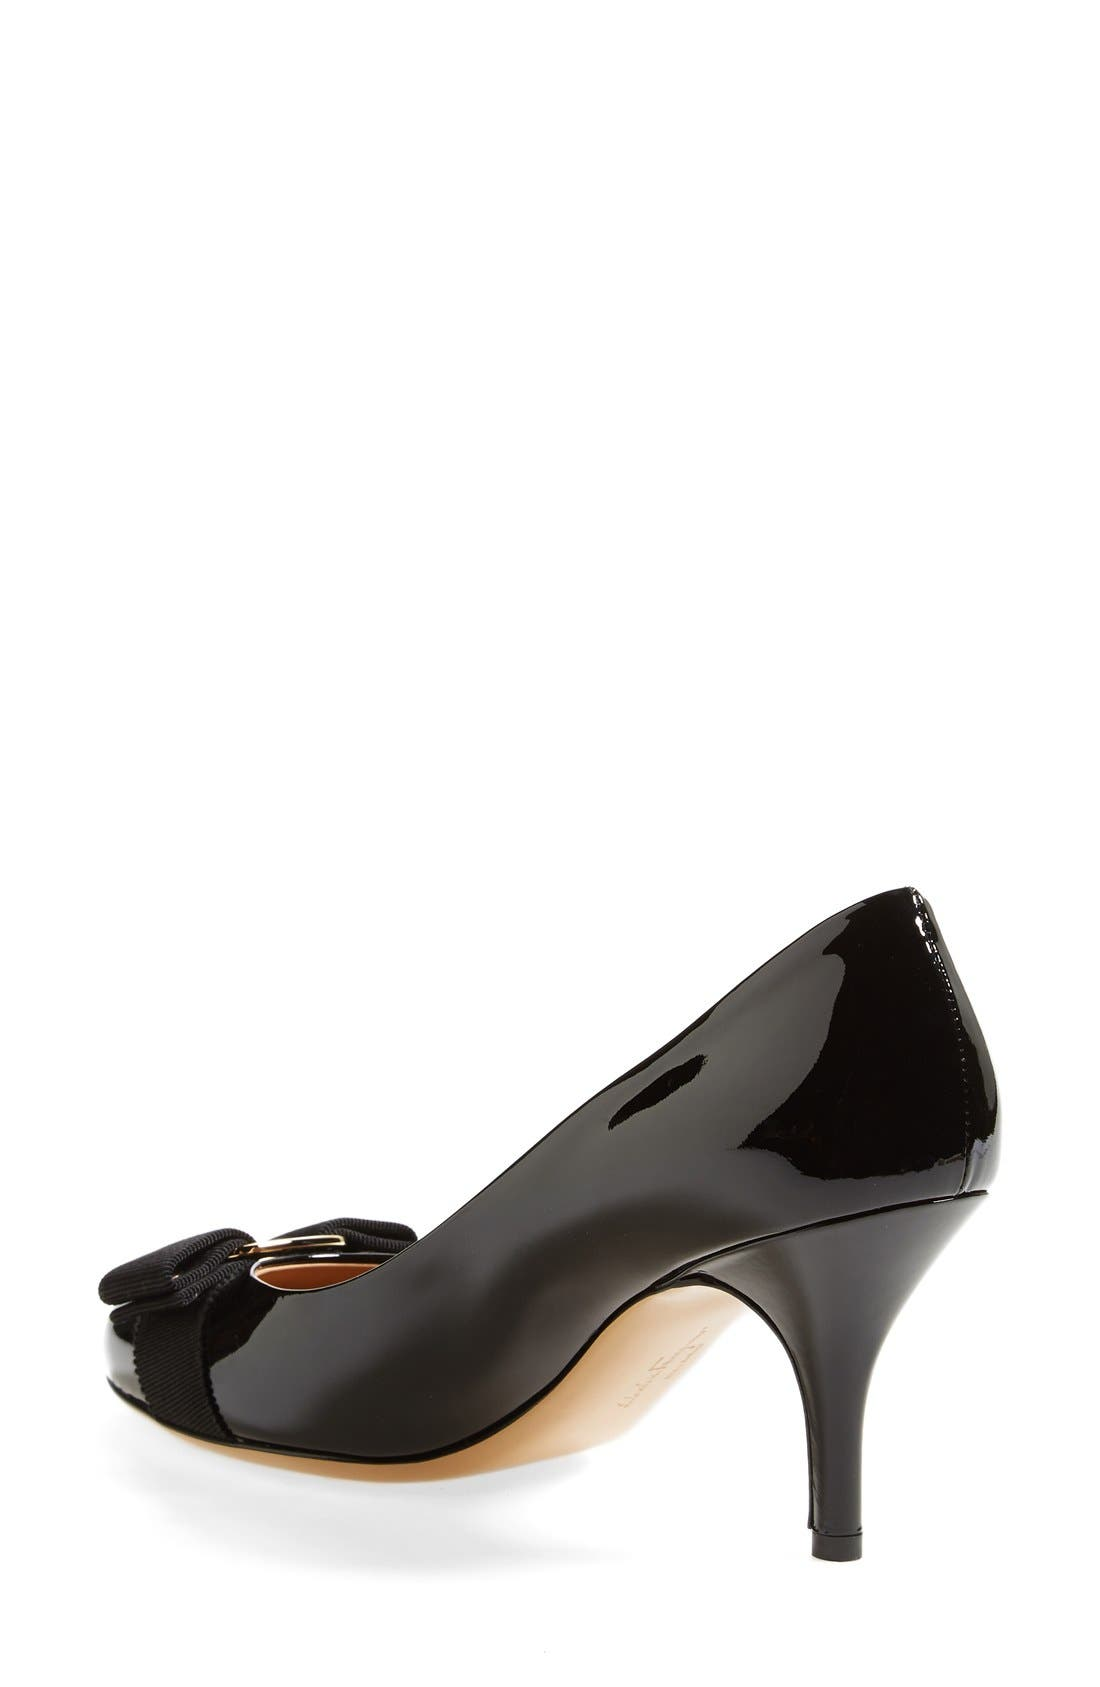 Alternate Image 2  - Salvatore Ferragamo 'Carla' Patent Leather Pump (Women)